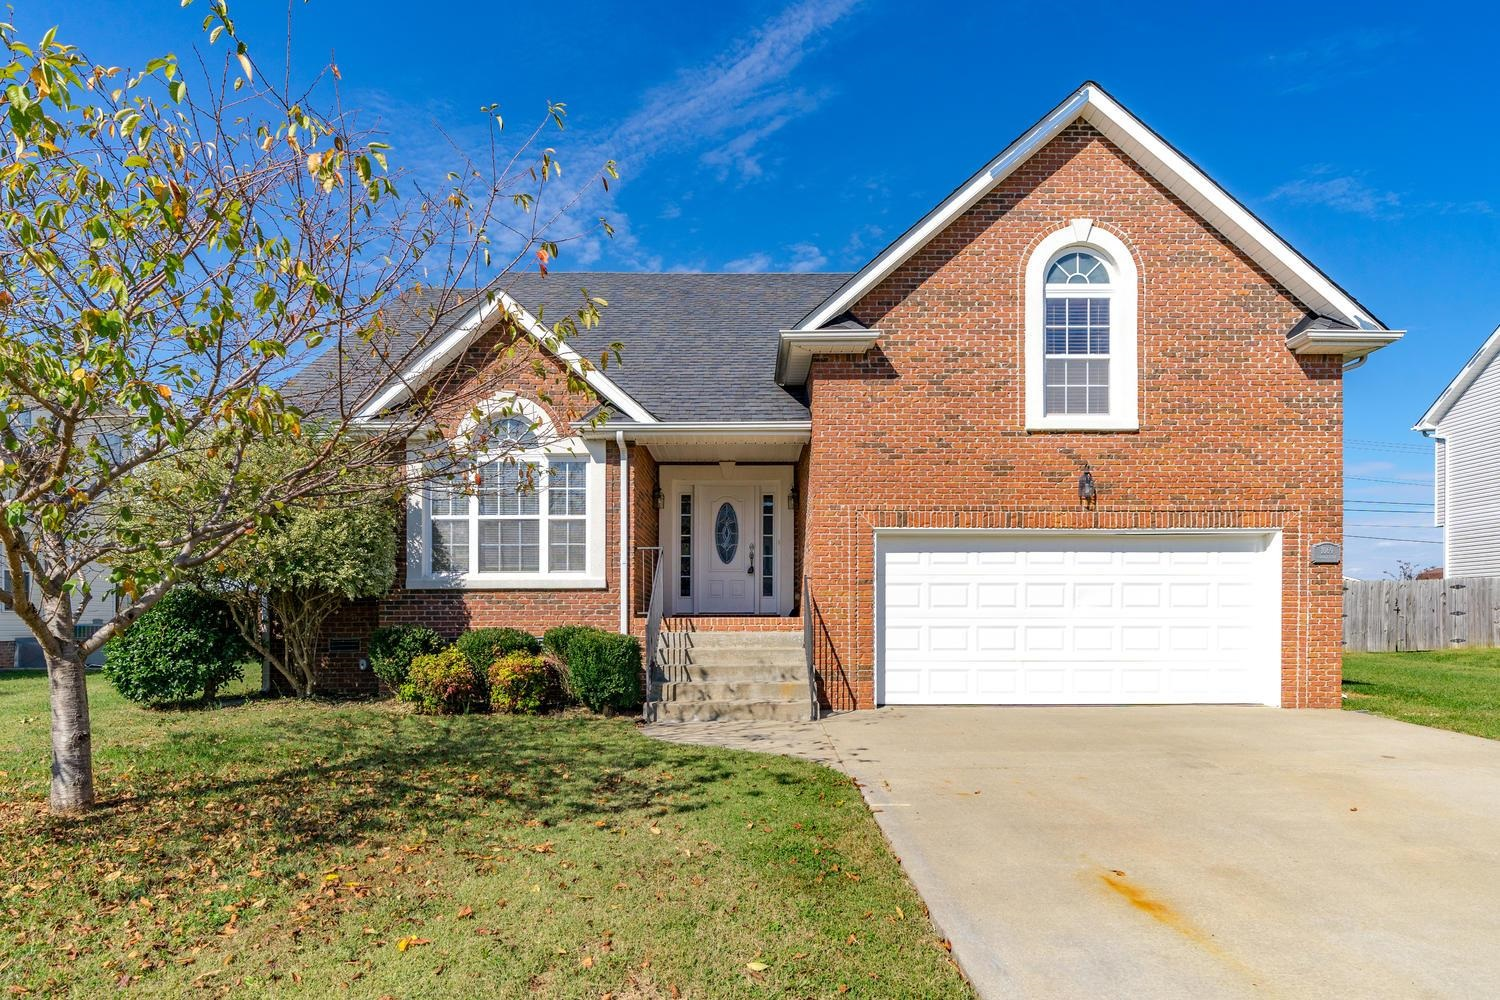 Homes for Sale in Tuscany Fields Subdivision Clarksville TN